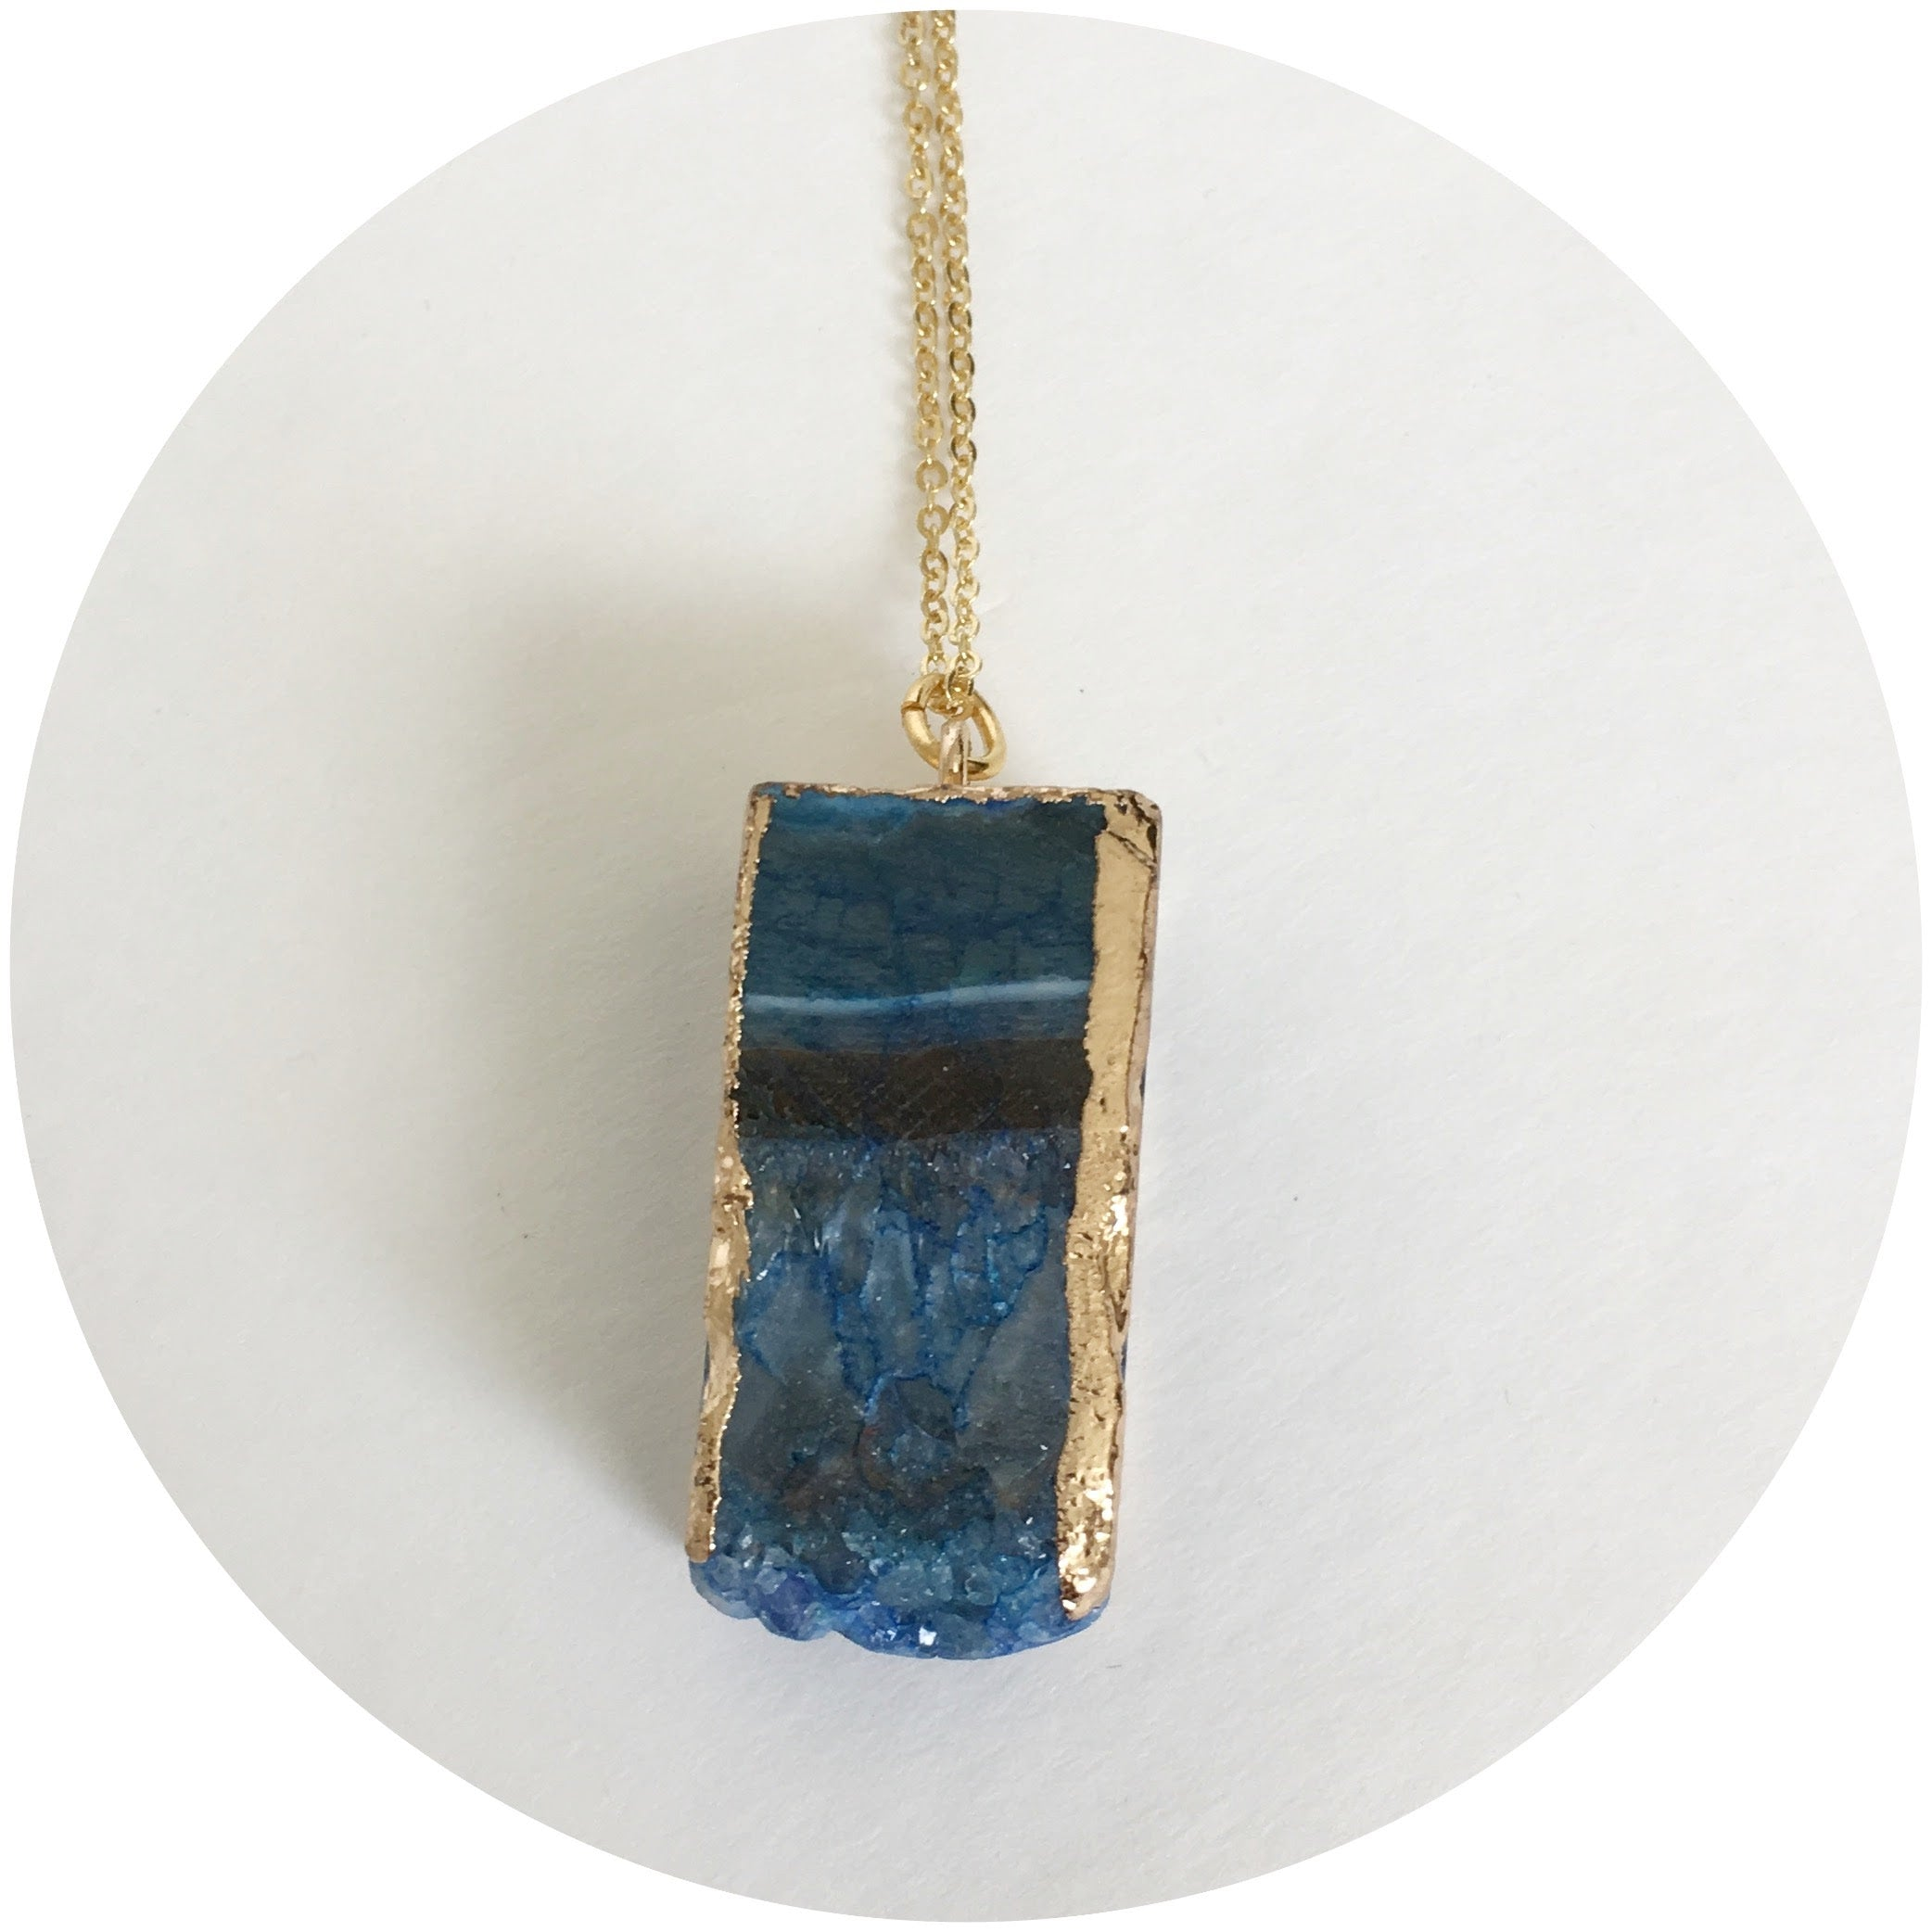 Lapis Square Nugget Gold Necklace - Oriana Lamarca LLC